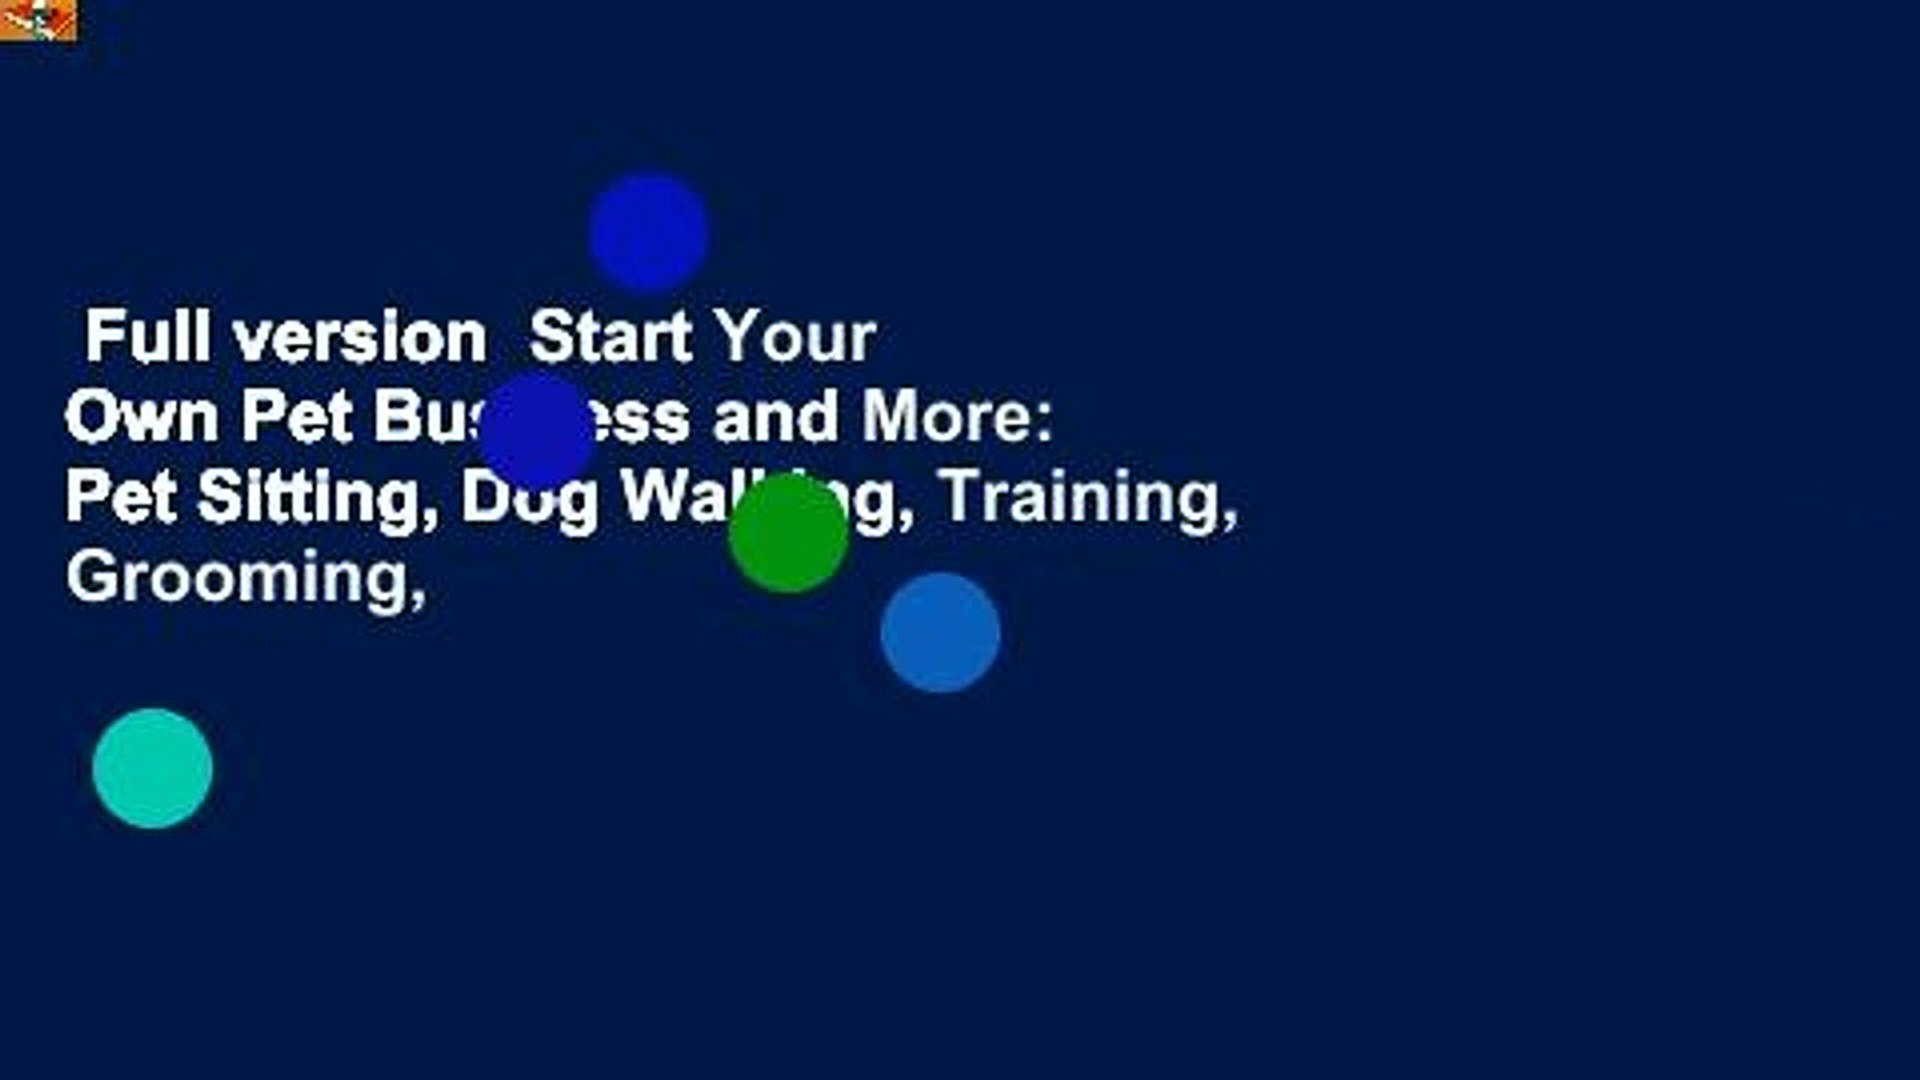 Full version  Start Your Own Pet Business and More: Pet Sitting, Dog Walking, Training, Grooming,